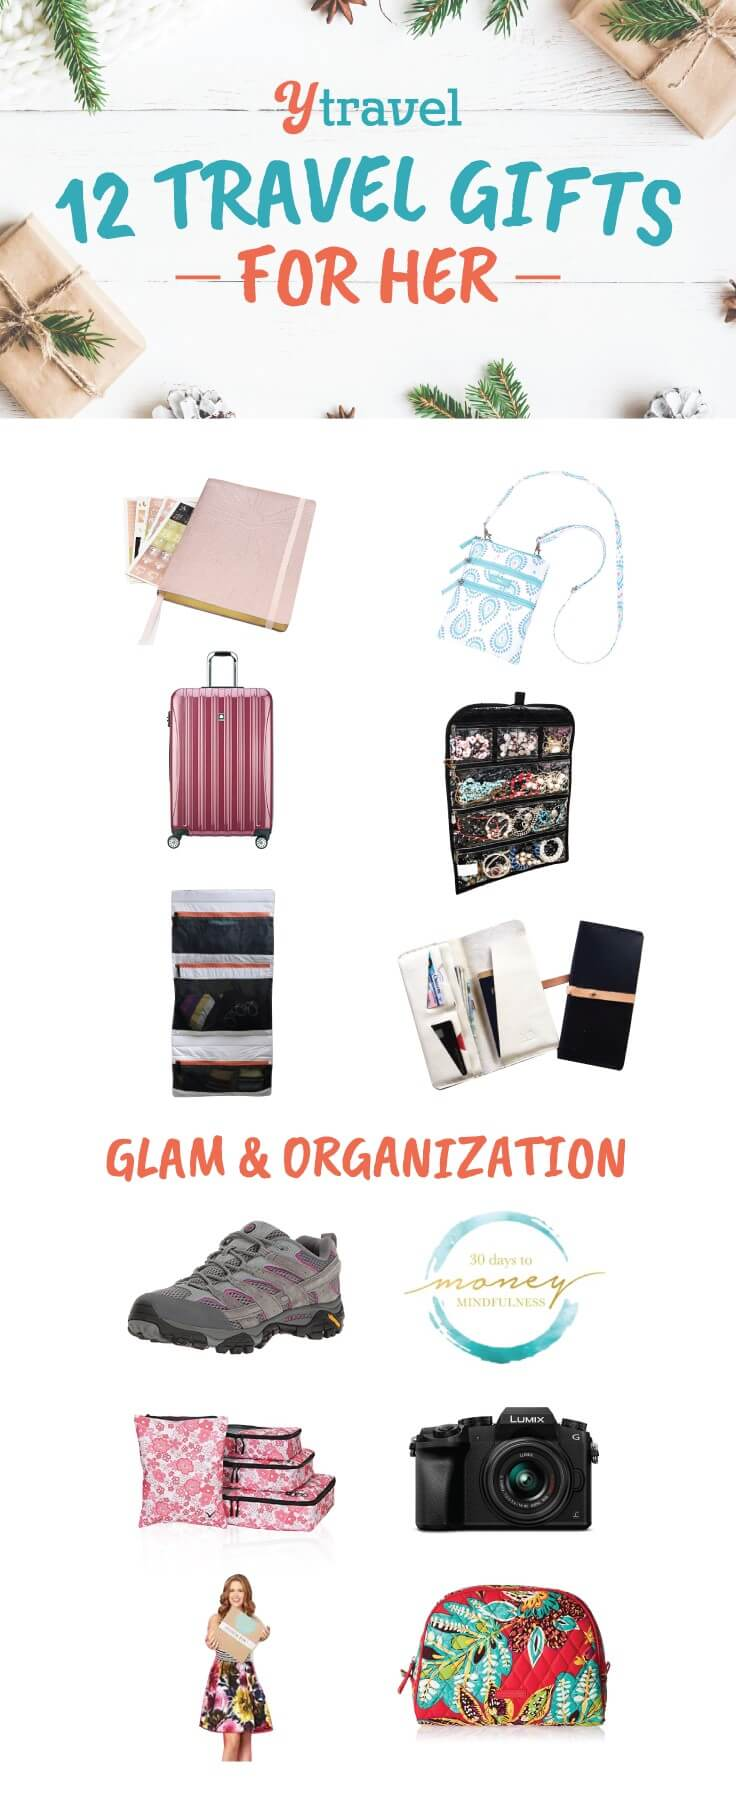 Travel gifts for her. Looking for the best travel gifts for her this holiday season? I share my favorite travel products and services that offer the woman you love glam and travel organization. Great travel gift ideas ahead!